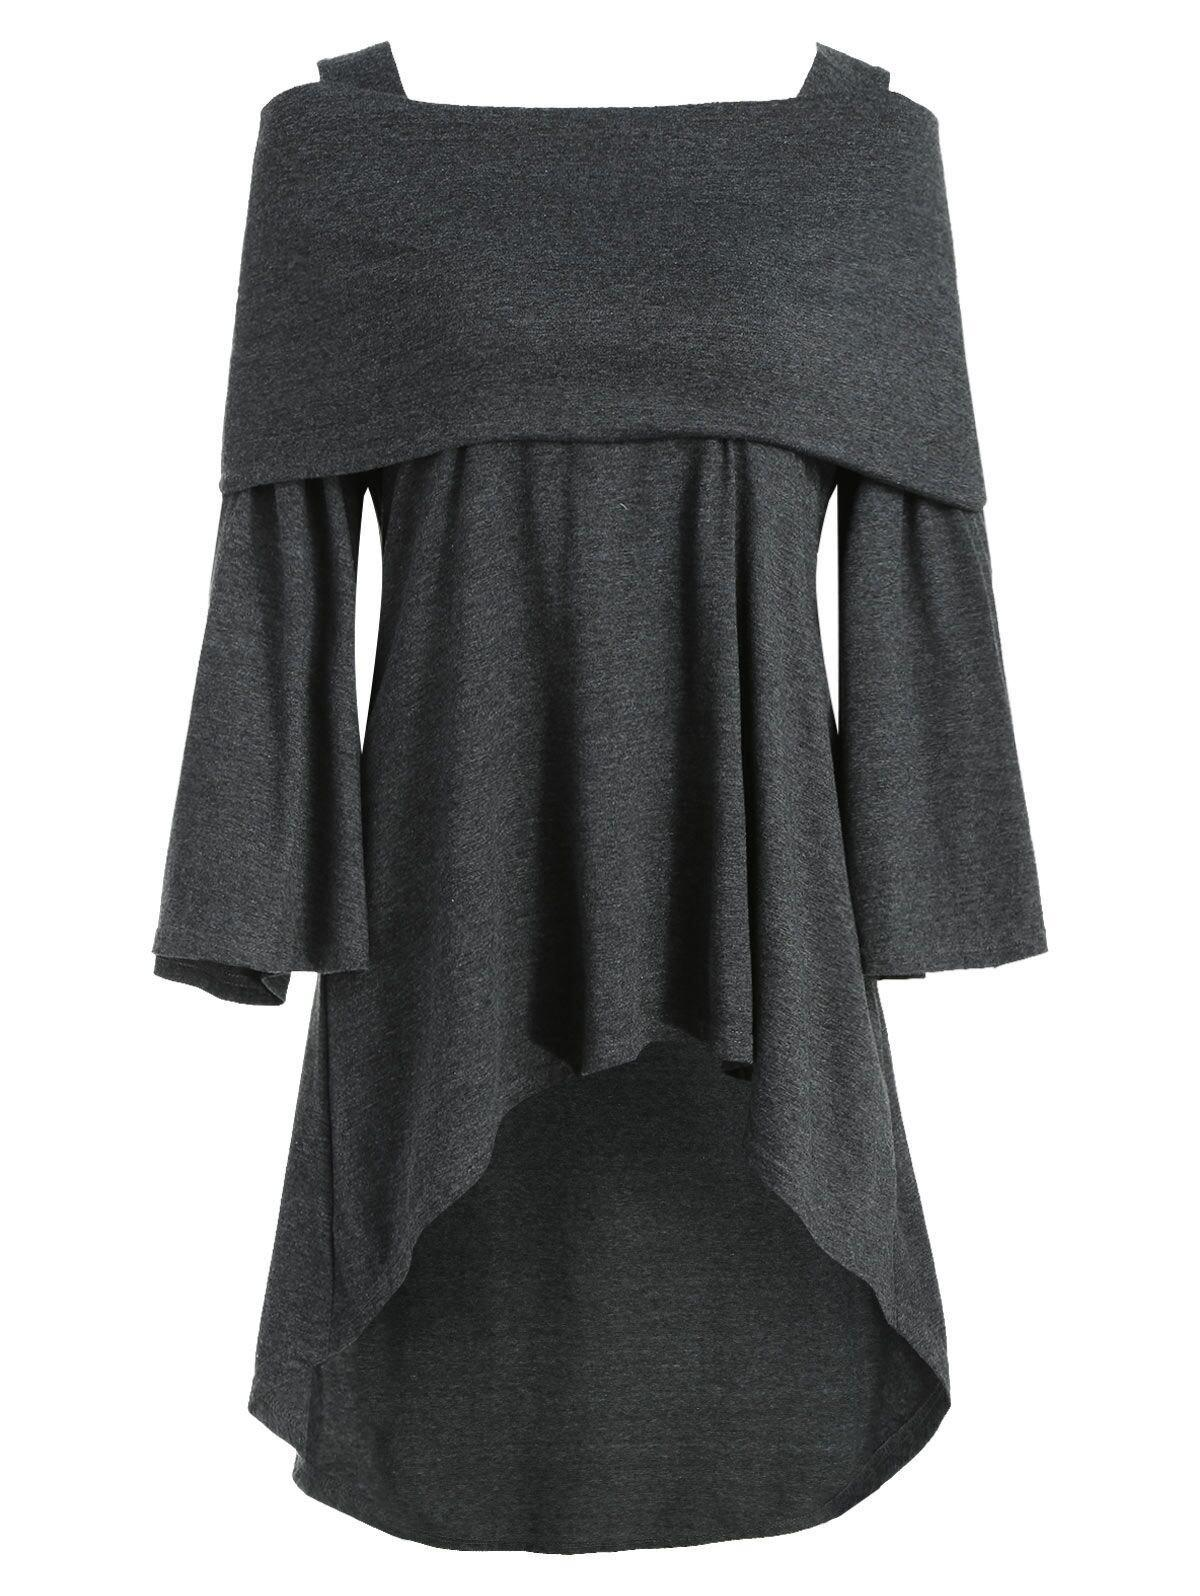 Plus Size Foldover Bell Sleeve High Low T Shirt - GRAY 3X